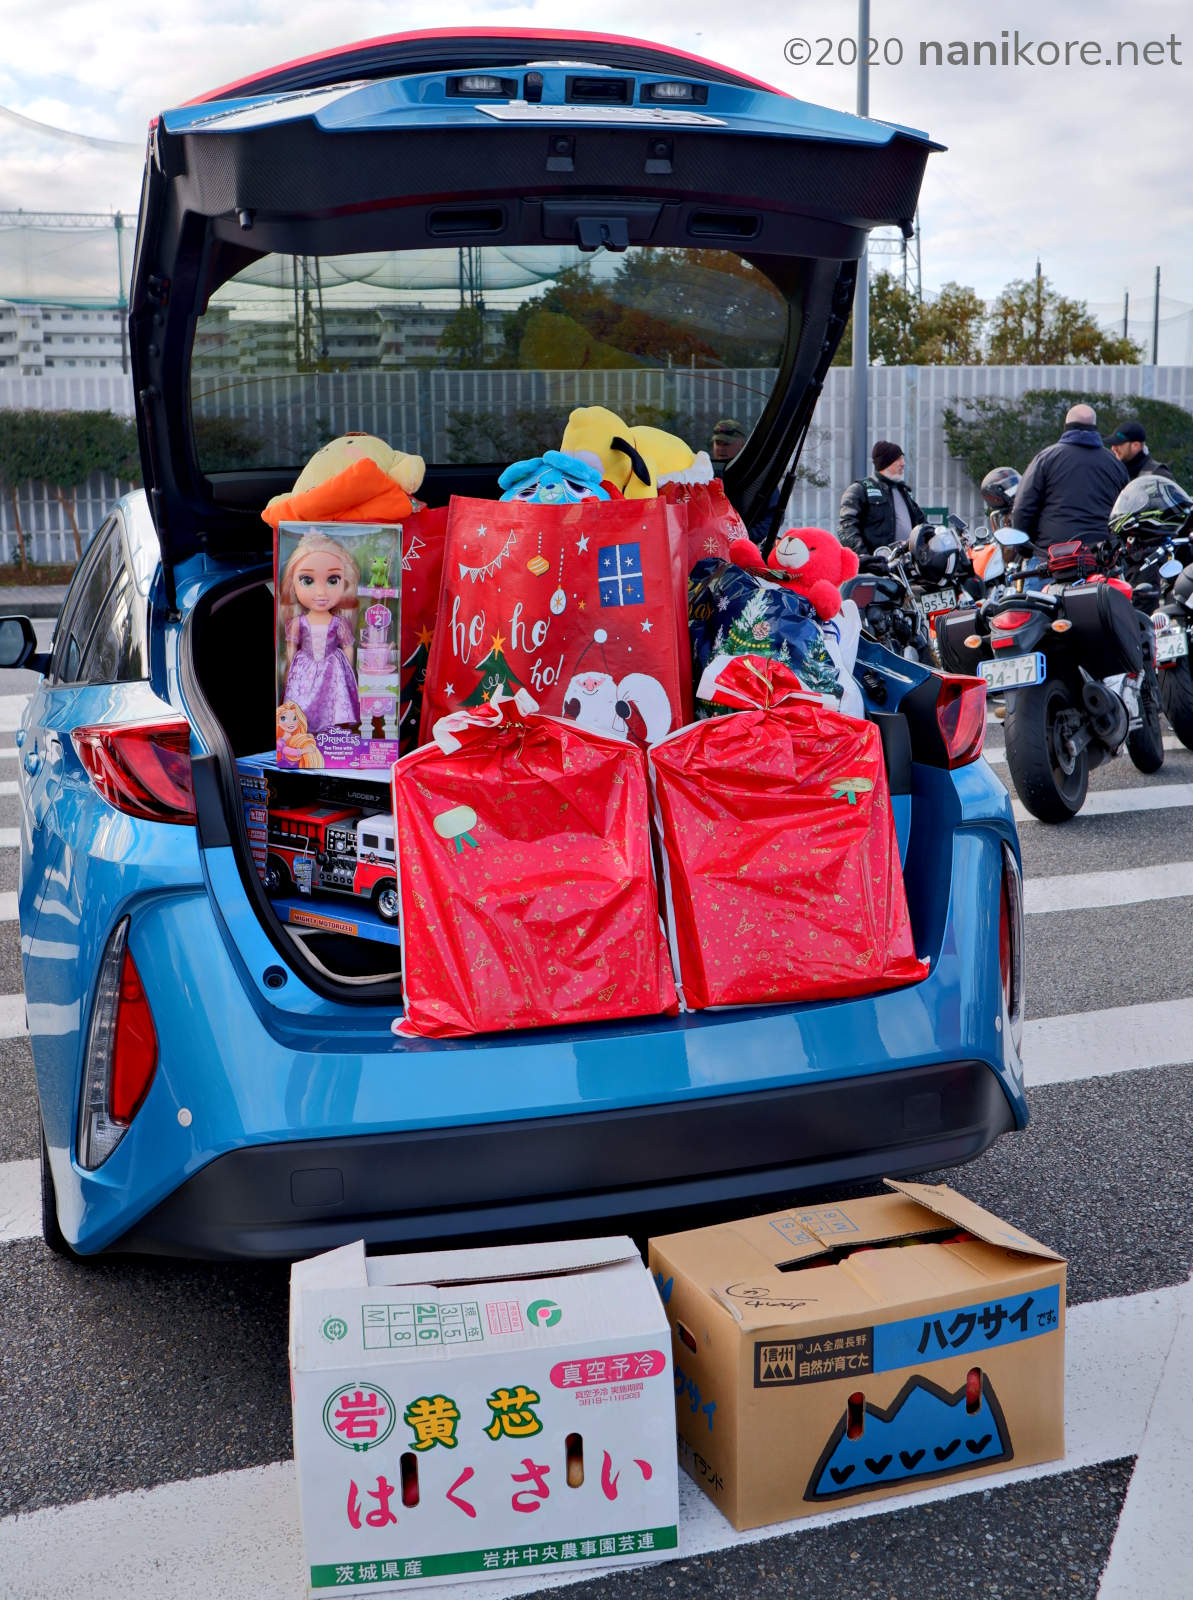 More cars full of gifts